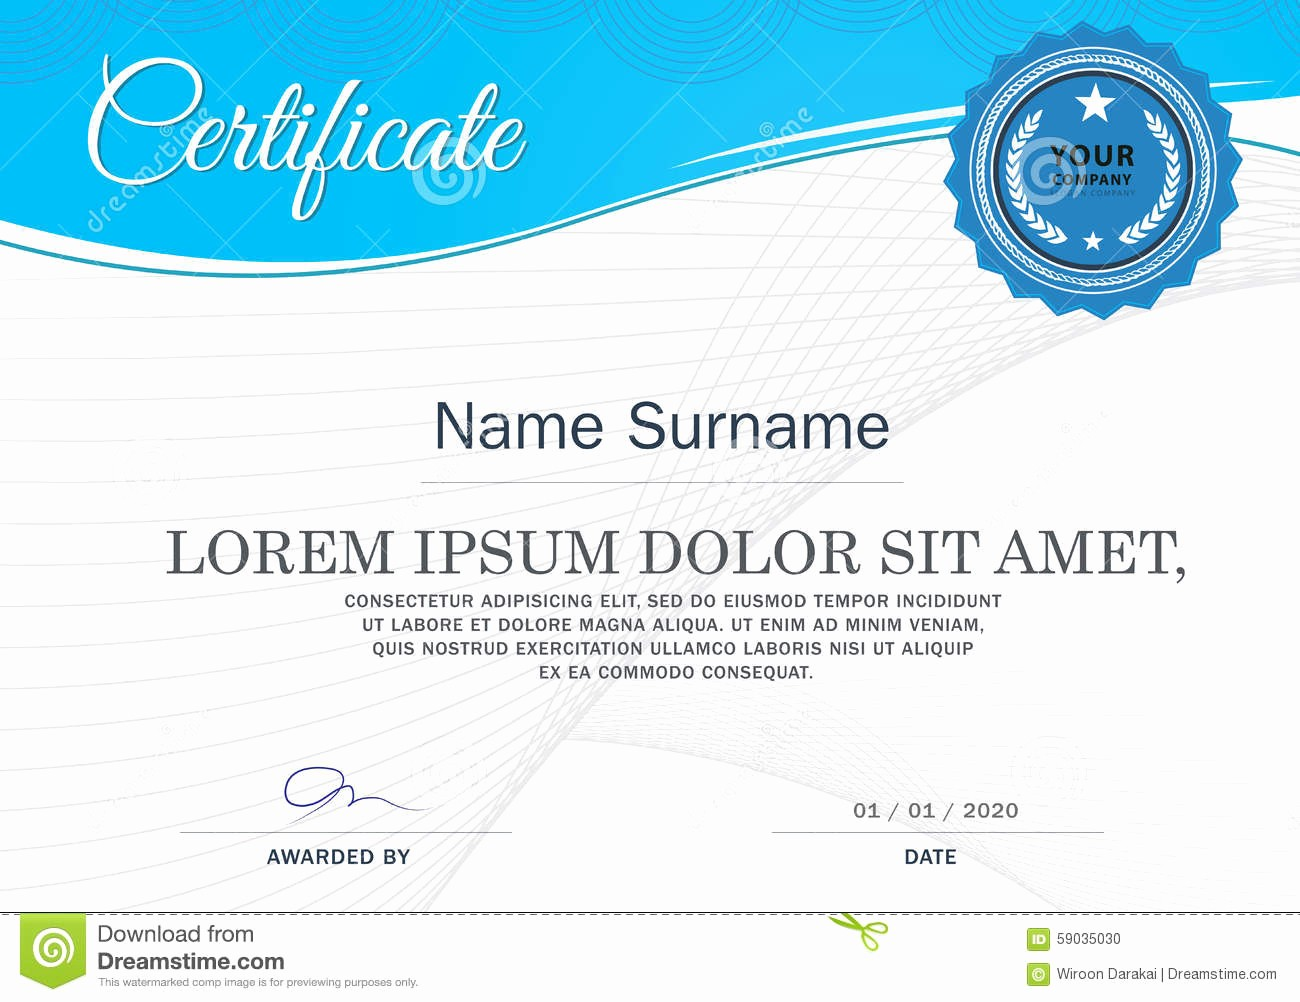 How to Design A Certificate Beautiful Certificate Achievement Frame Design Template Blue